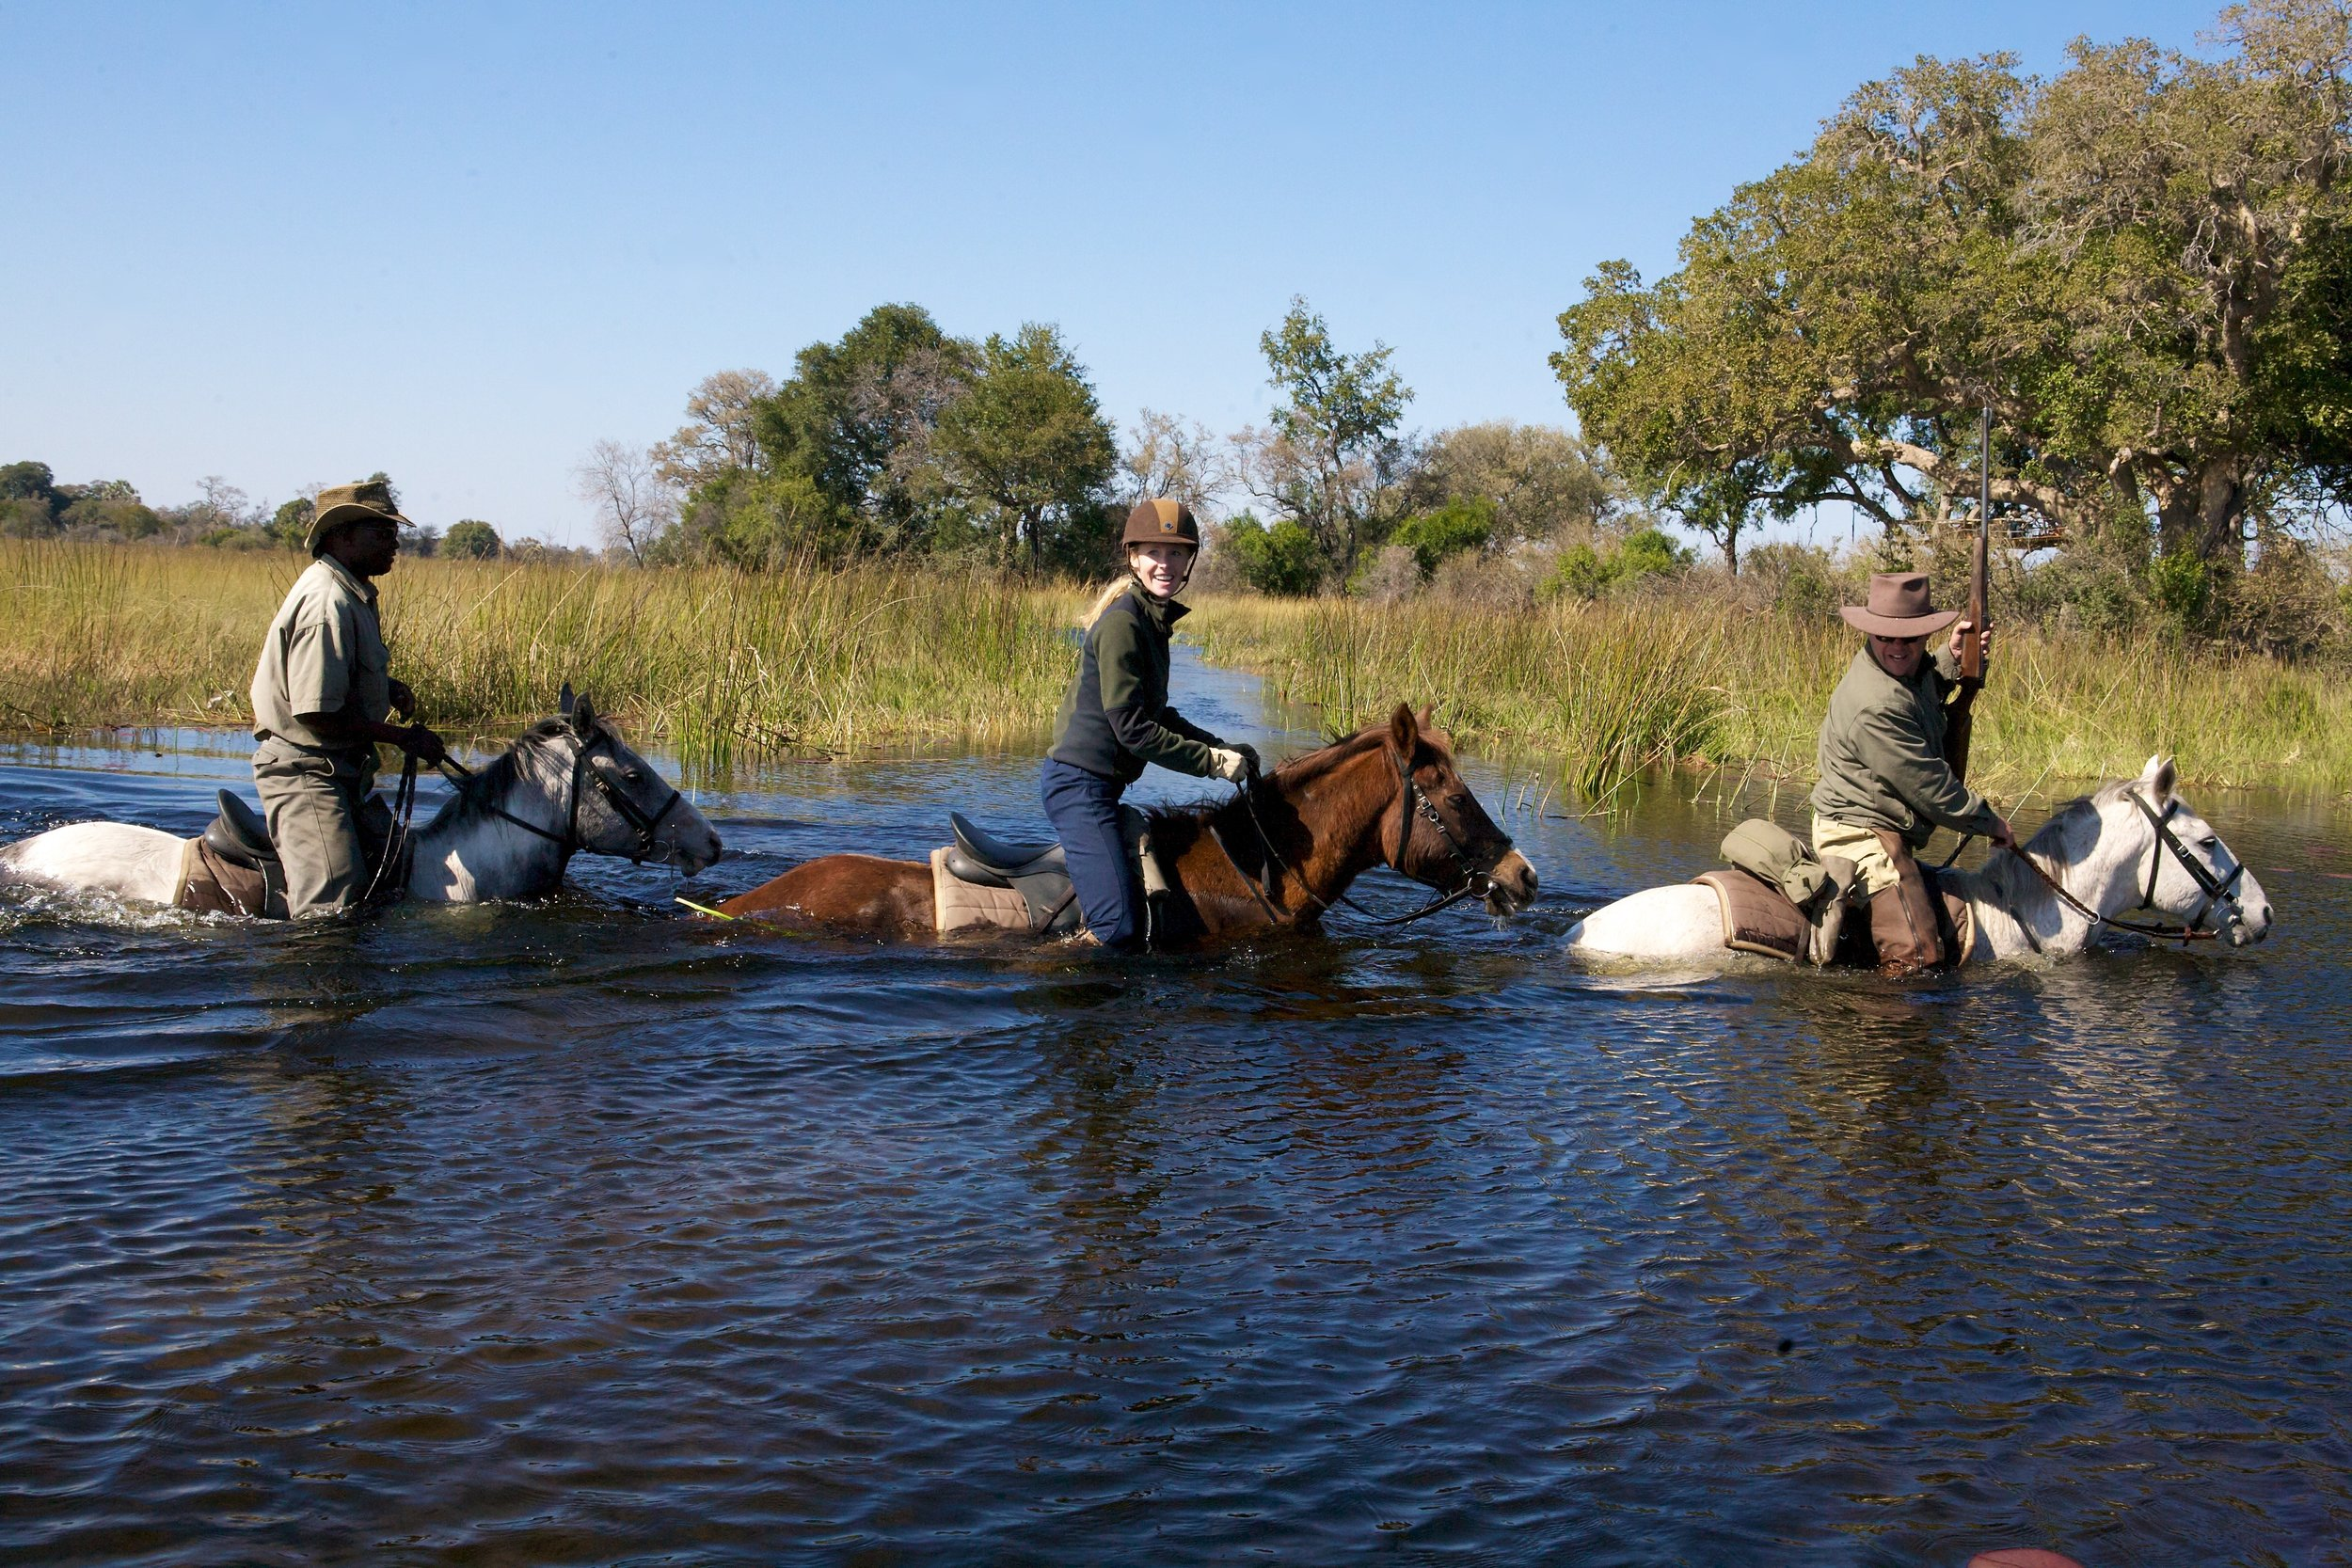 Darley riding in Botswana's Okavango Delta, photo courtesy Equitrekking  Cover photo: Darley with meerkats in Botswana, courtesy Equitrekking  (true, they're not horses… but they're so CUTE!)